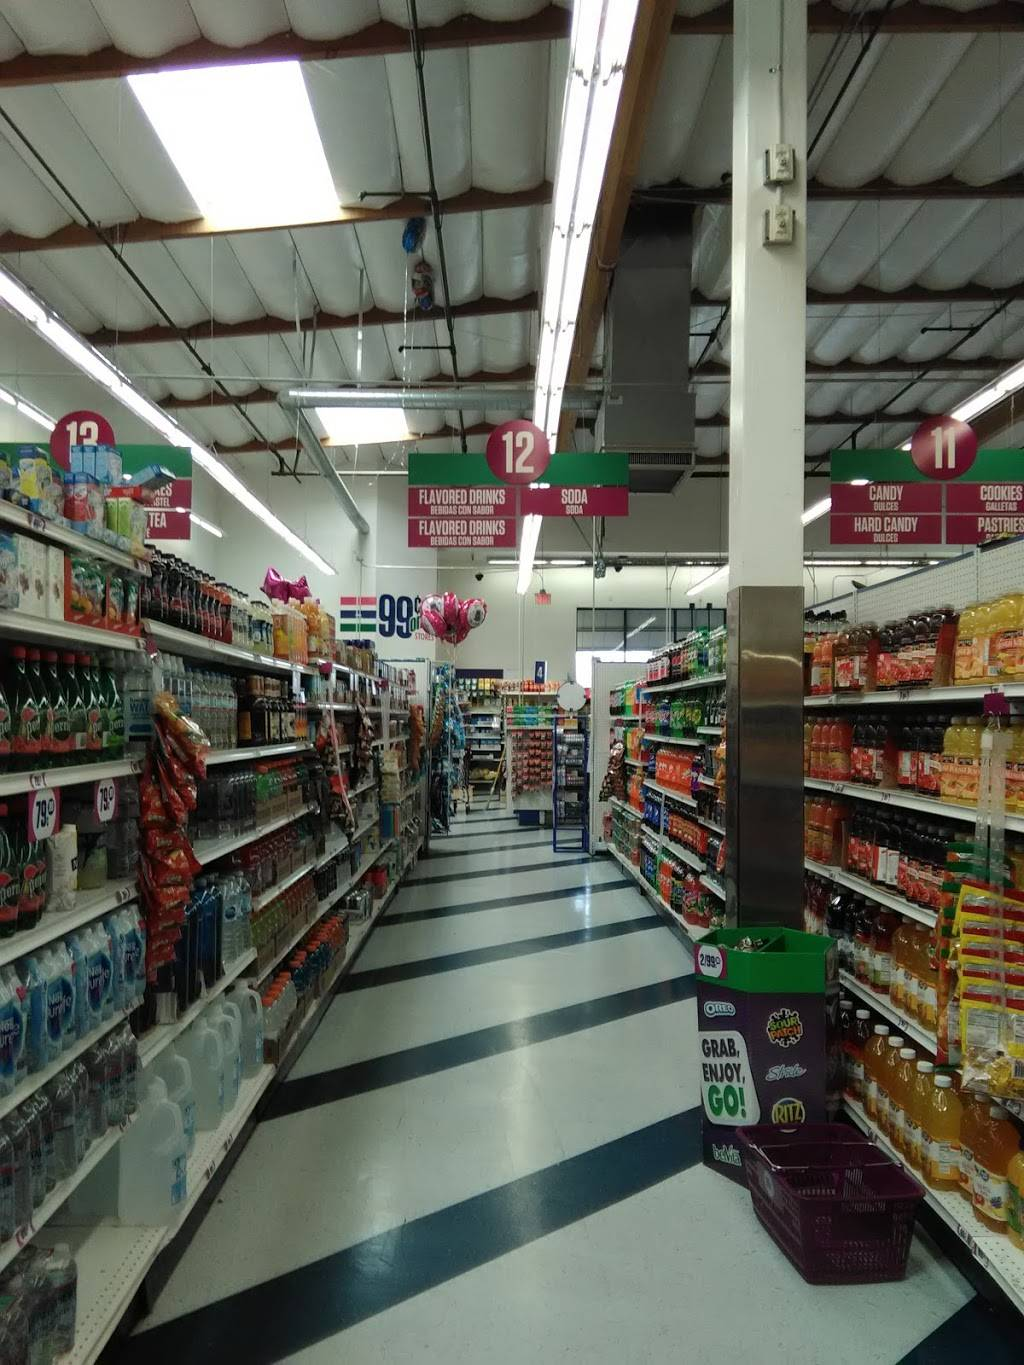 99 Cents Only Stores - supermarket  | Photo 2 of 10 | Address: 789 S Tustin St, Orange, CA 92866, USA | Phone: (714) 289-9992